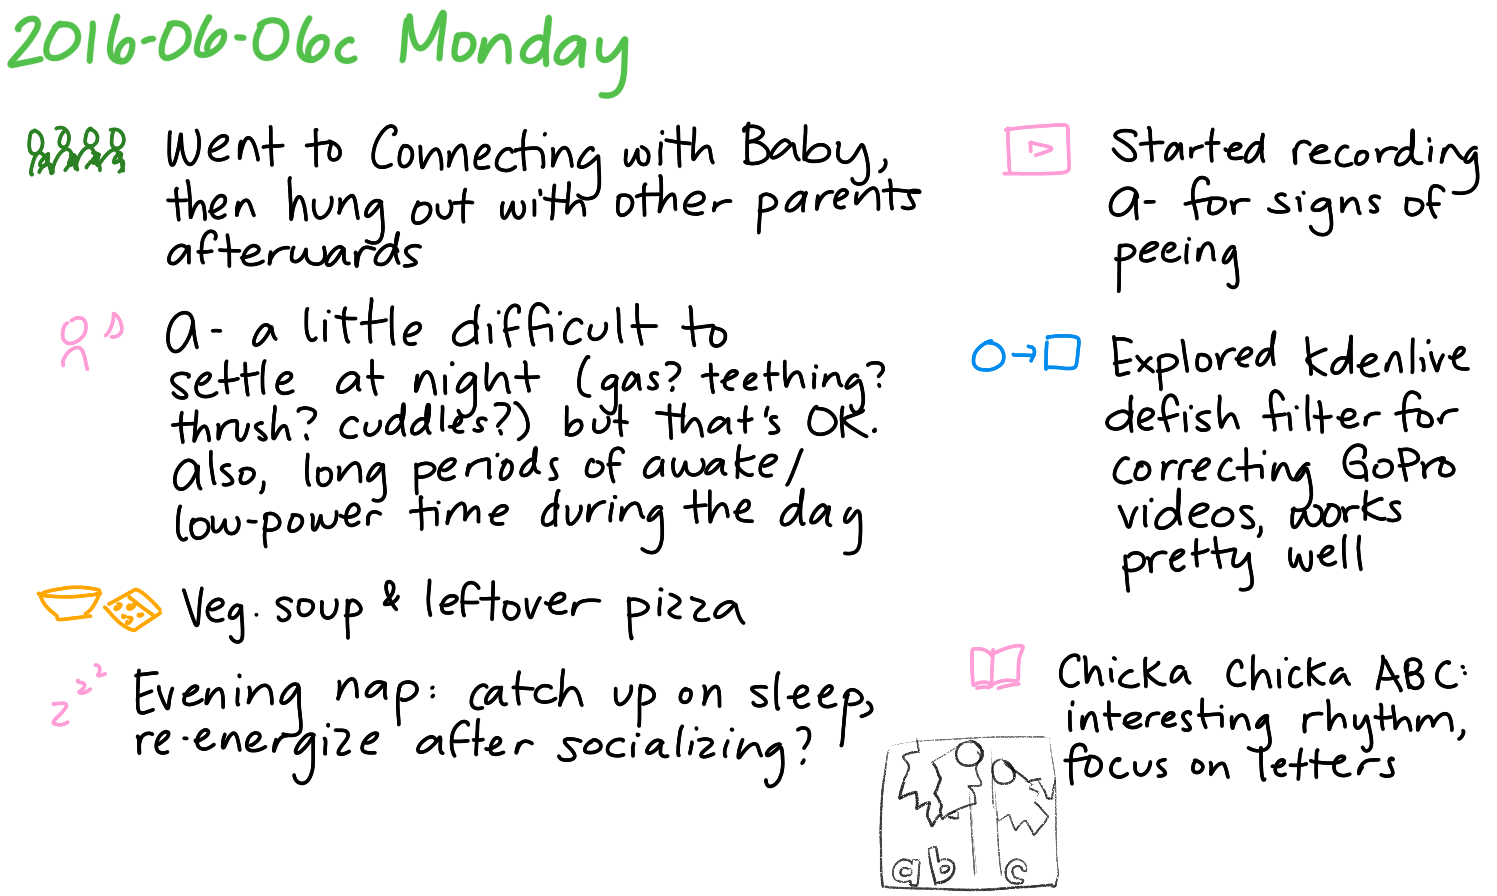 2016-06-06c Monday -- index card #journal.png